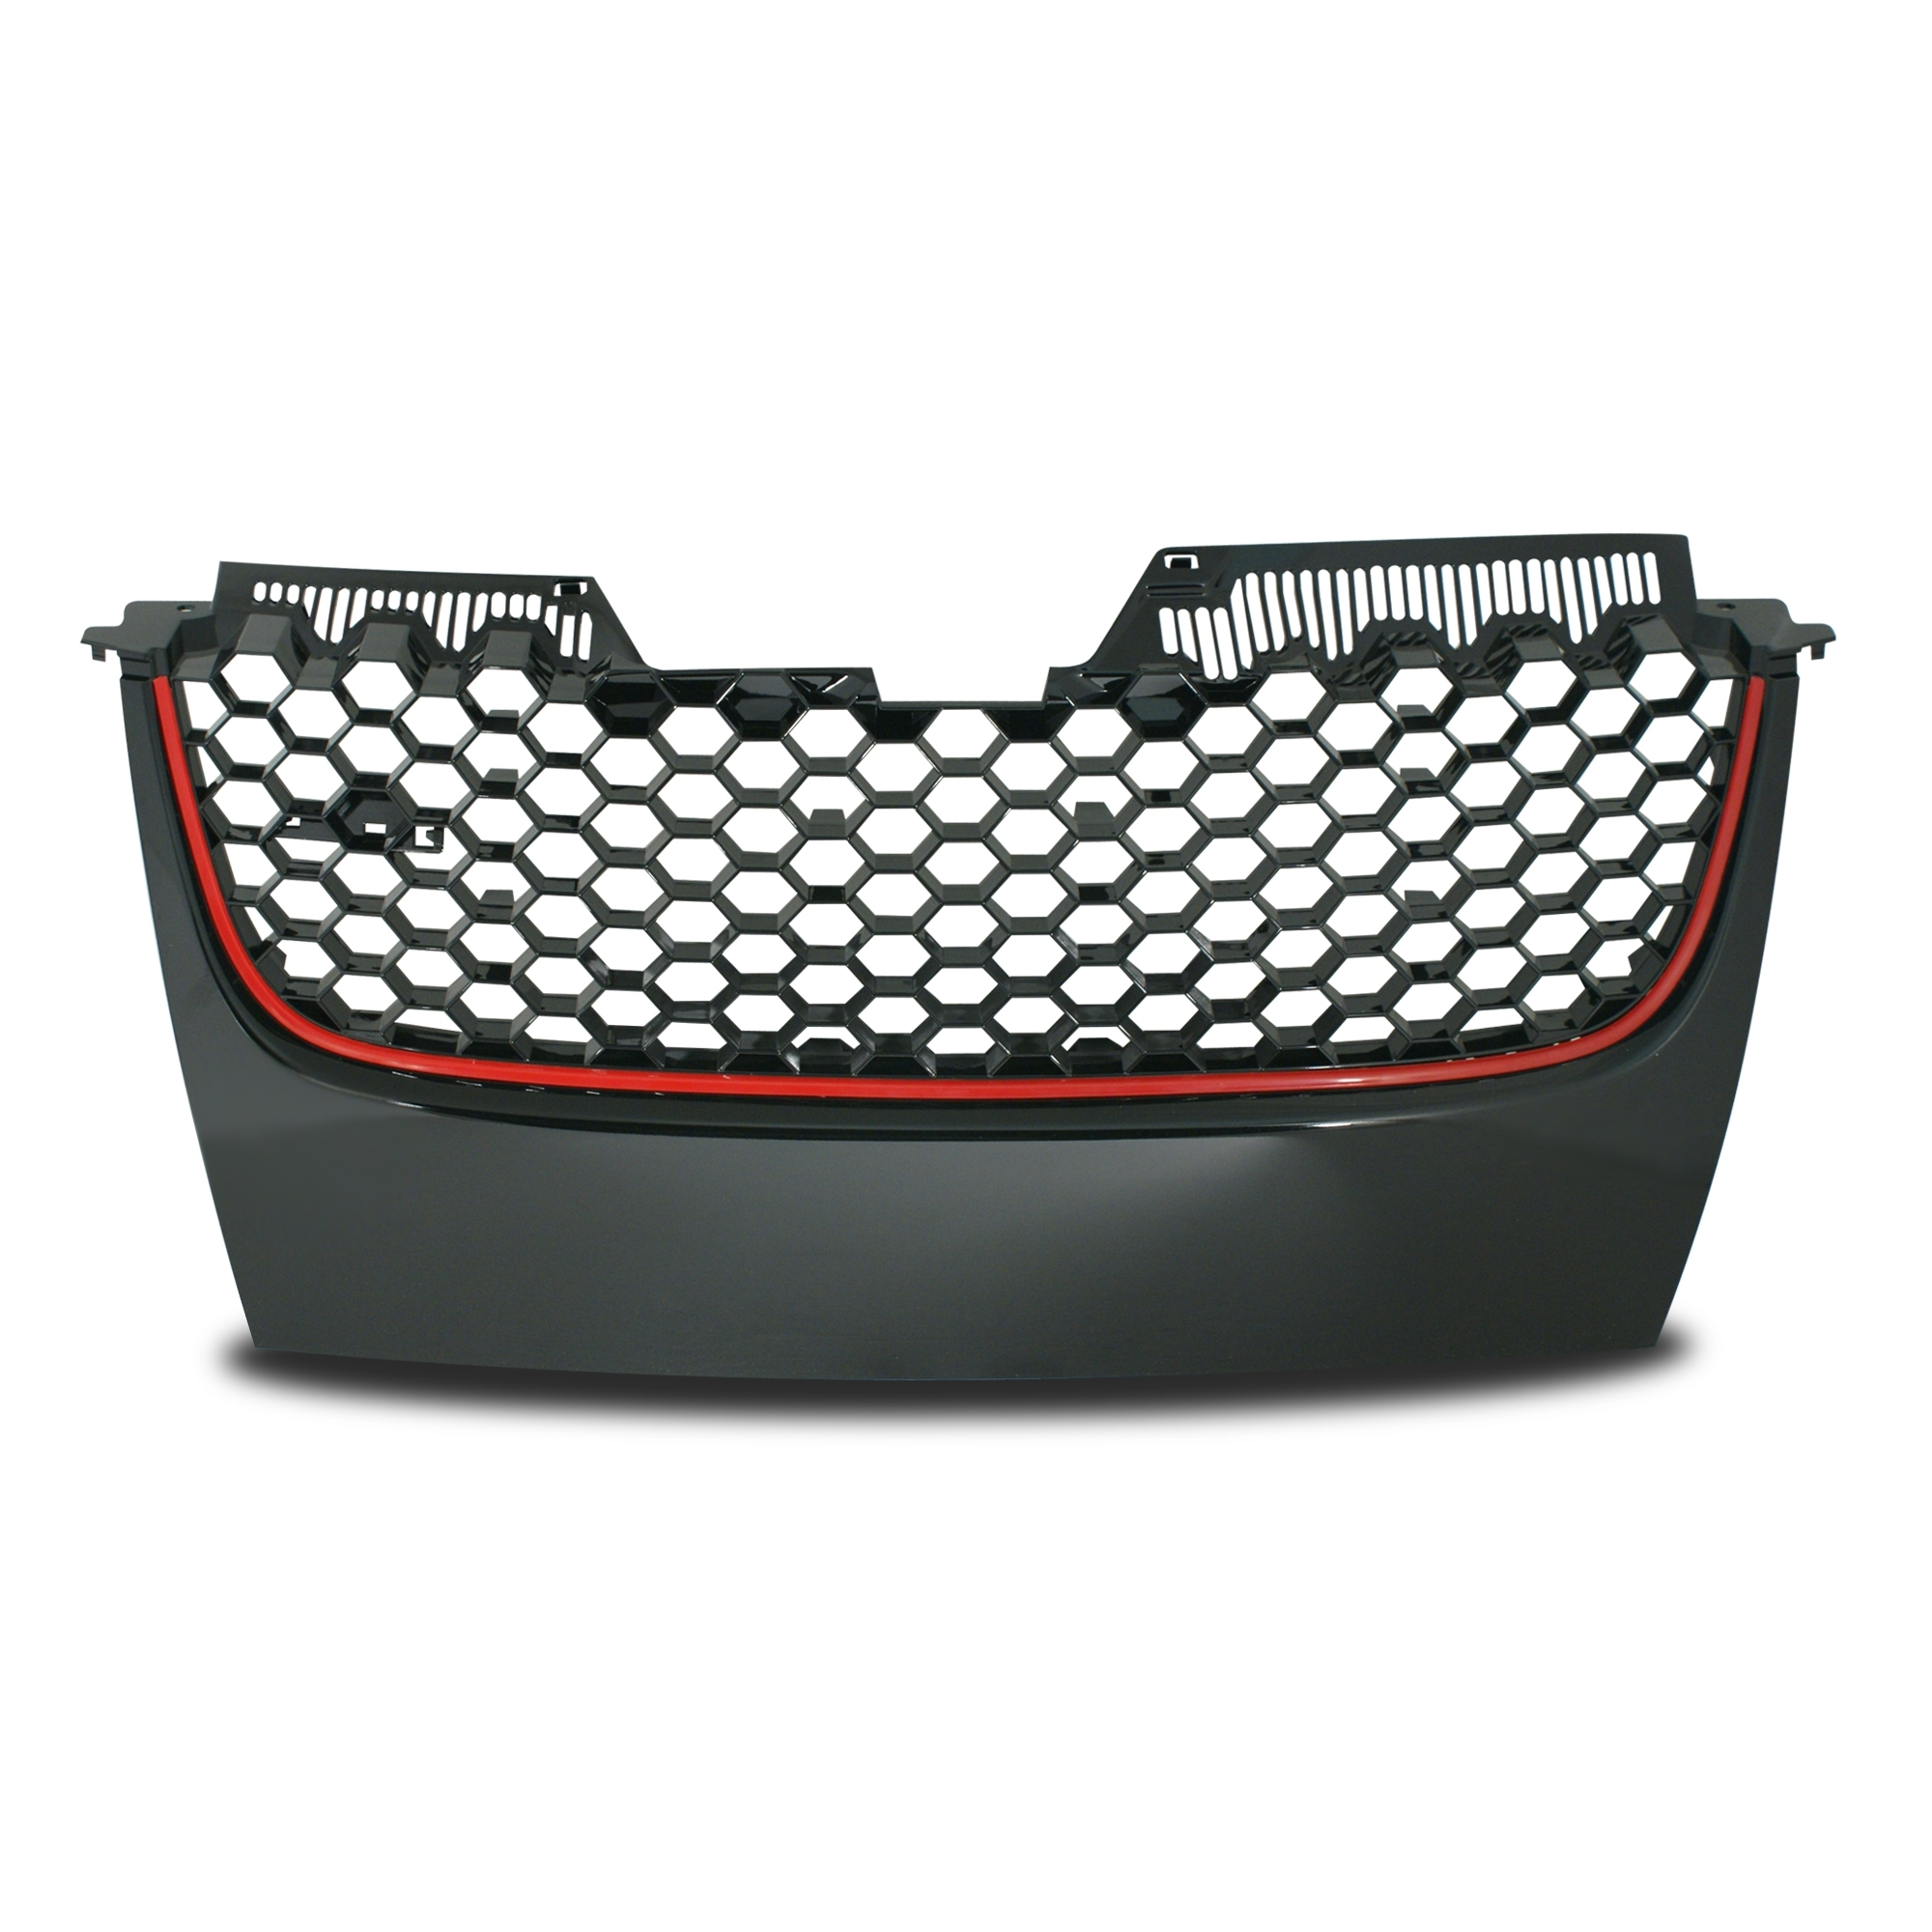 JOM Frontgrill GTI look med honey comb gitter i sort med rød liste til VW Golf 5 Styling